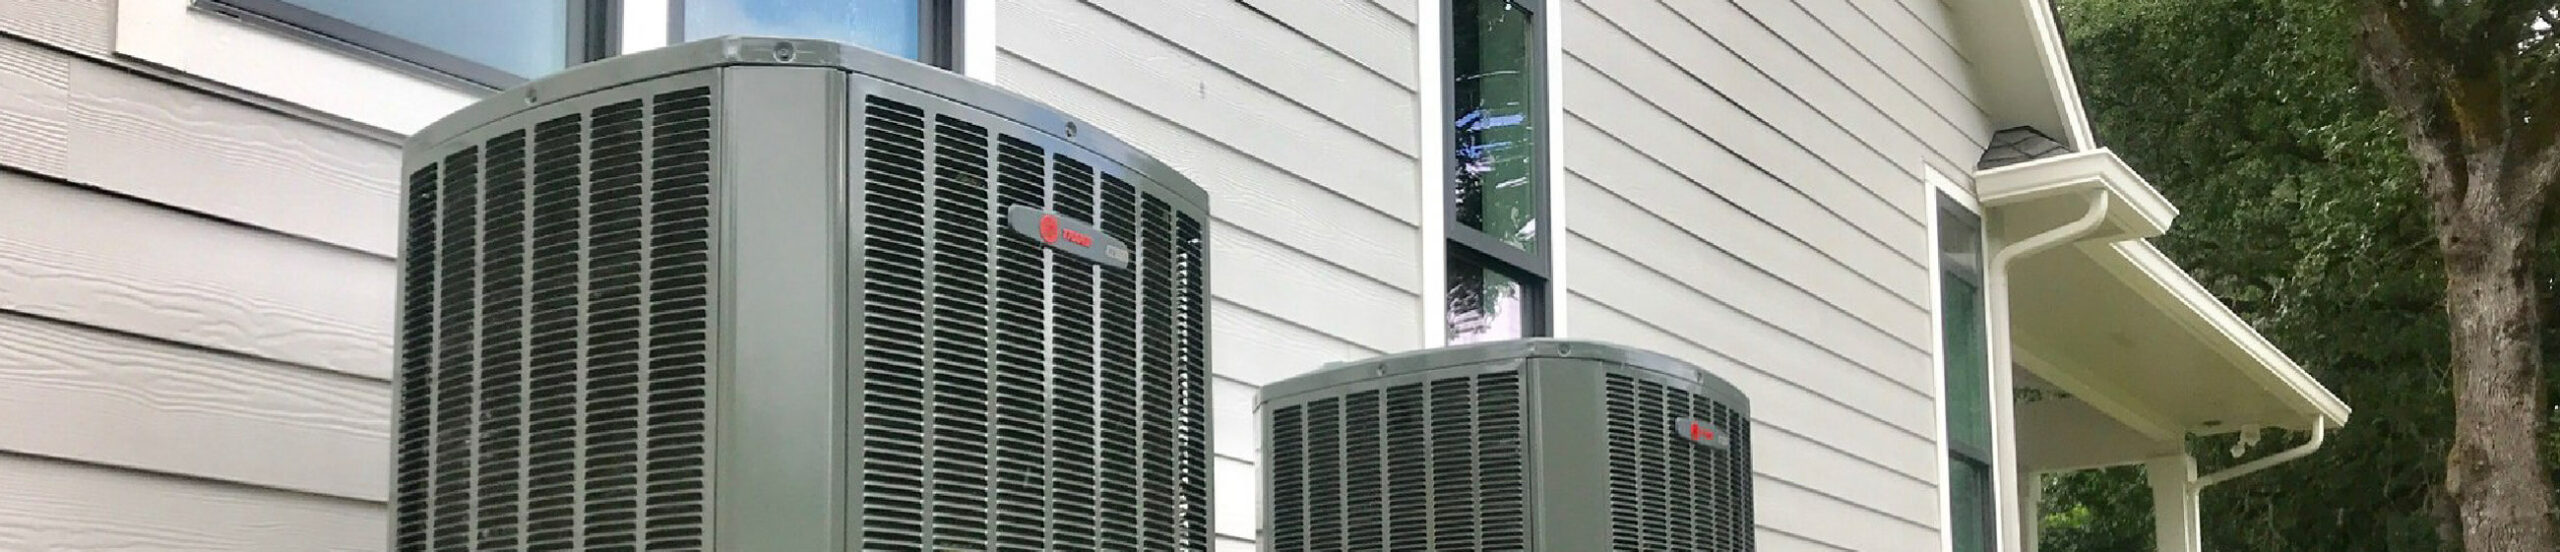 Two external Air Conditioners units outside of a home